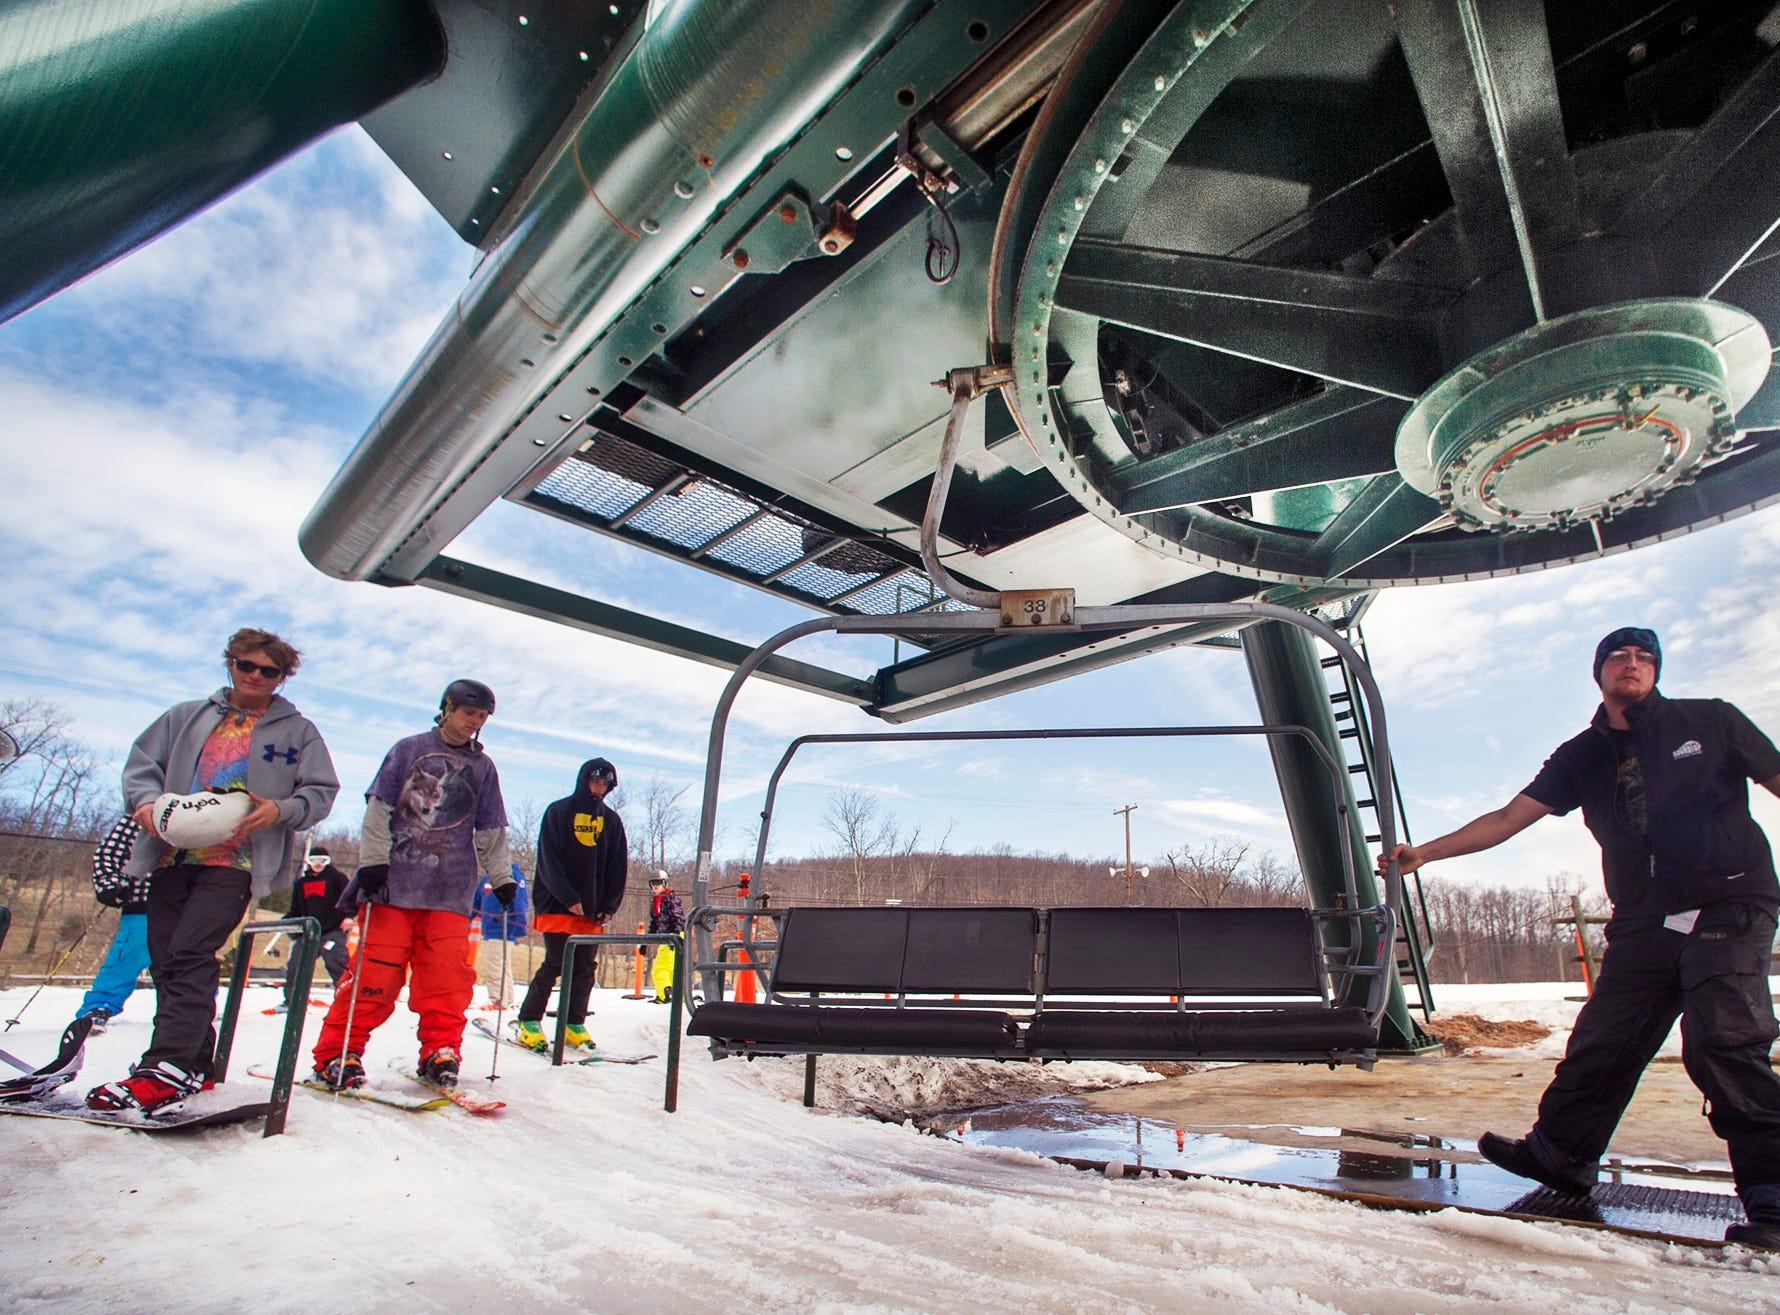 Nick Huff, a ski lift operator from Warrington Township, monitors the flow of people getting on March 11, 2014 at Roundtop Mountain Resort. Operation of the lift was back to normal Tuesday after worn-out part in what is the equivalent of a car's transmission failed in the motor room above the big pulley in the top of the frame.